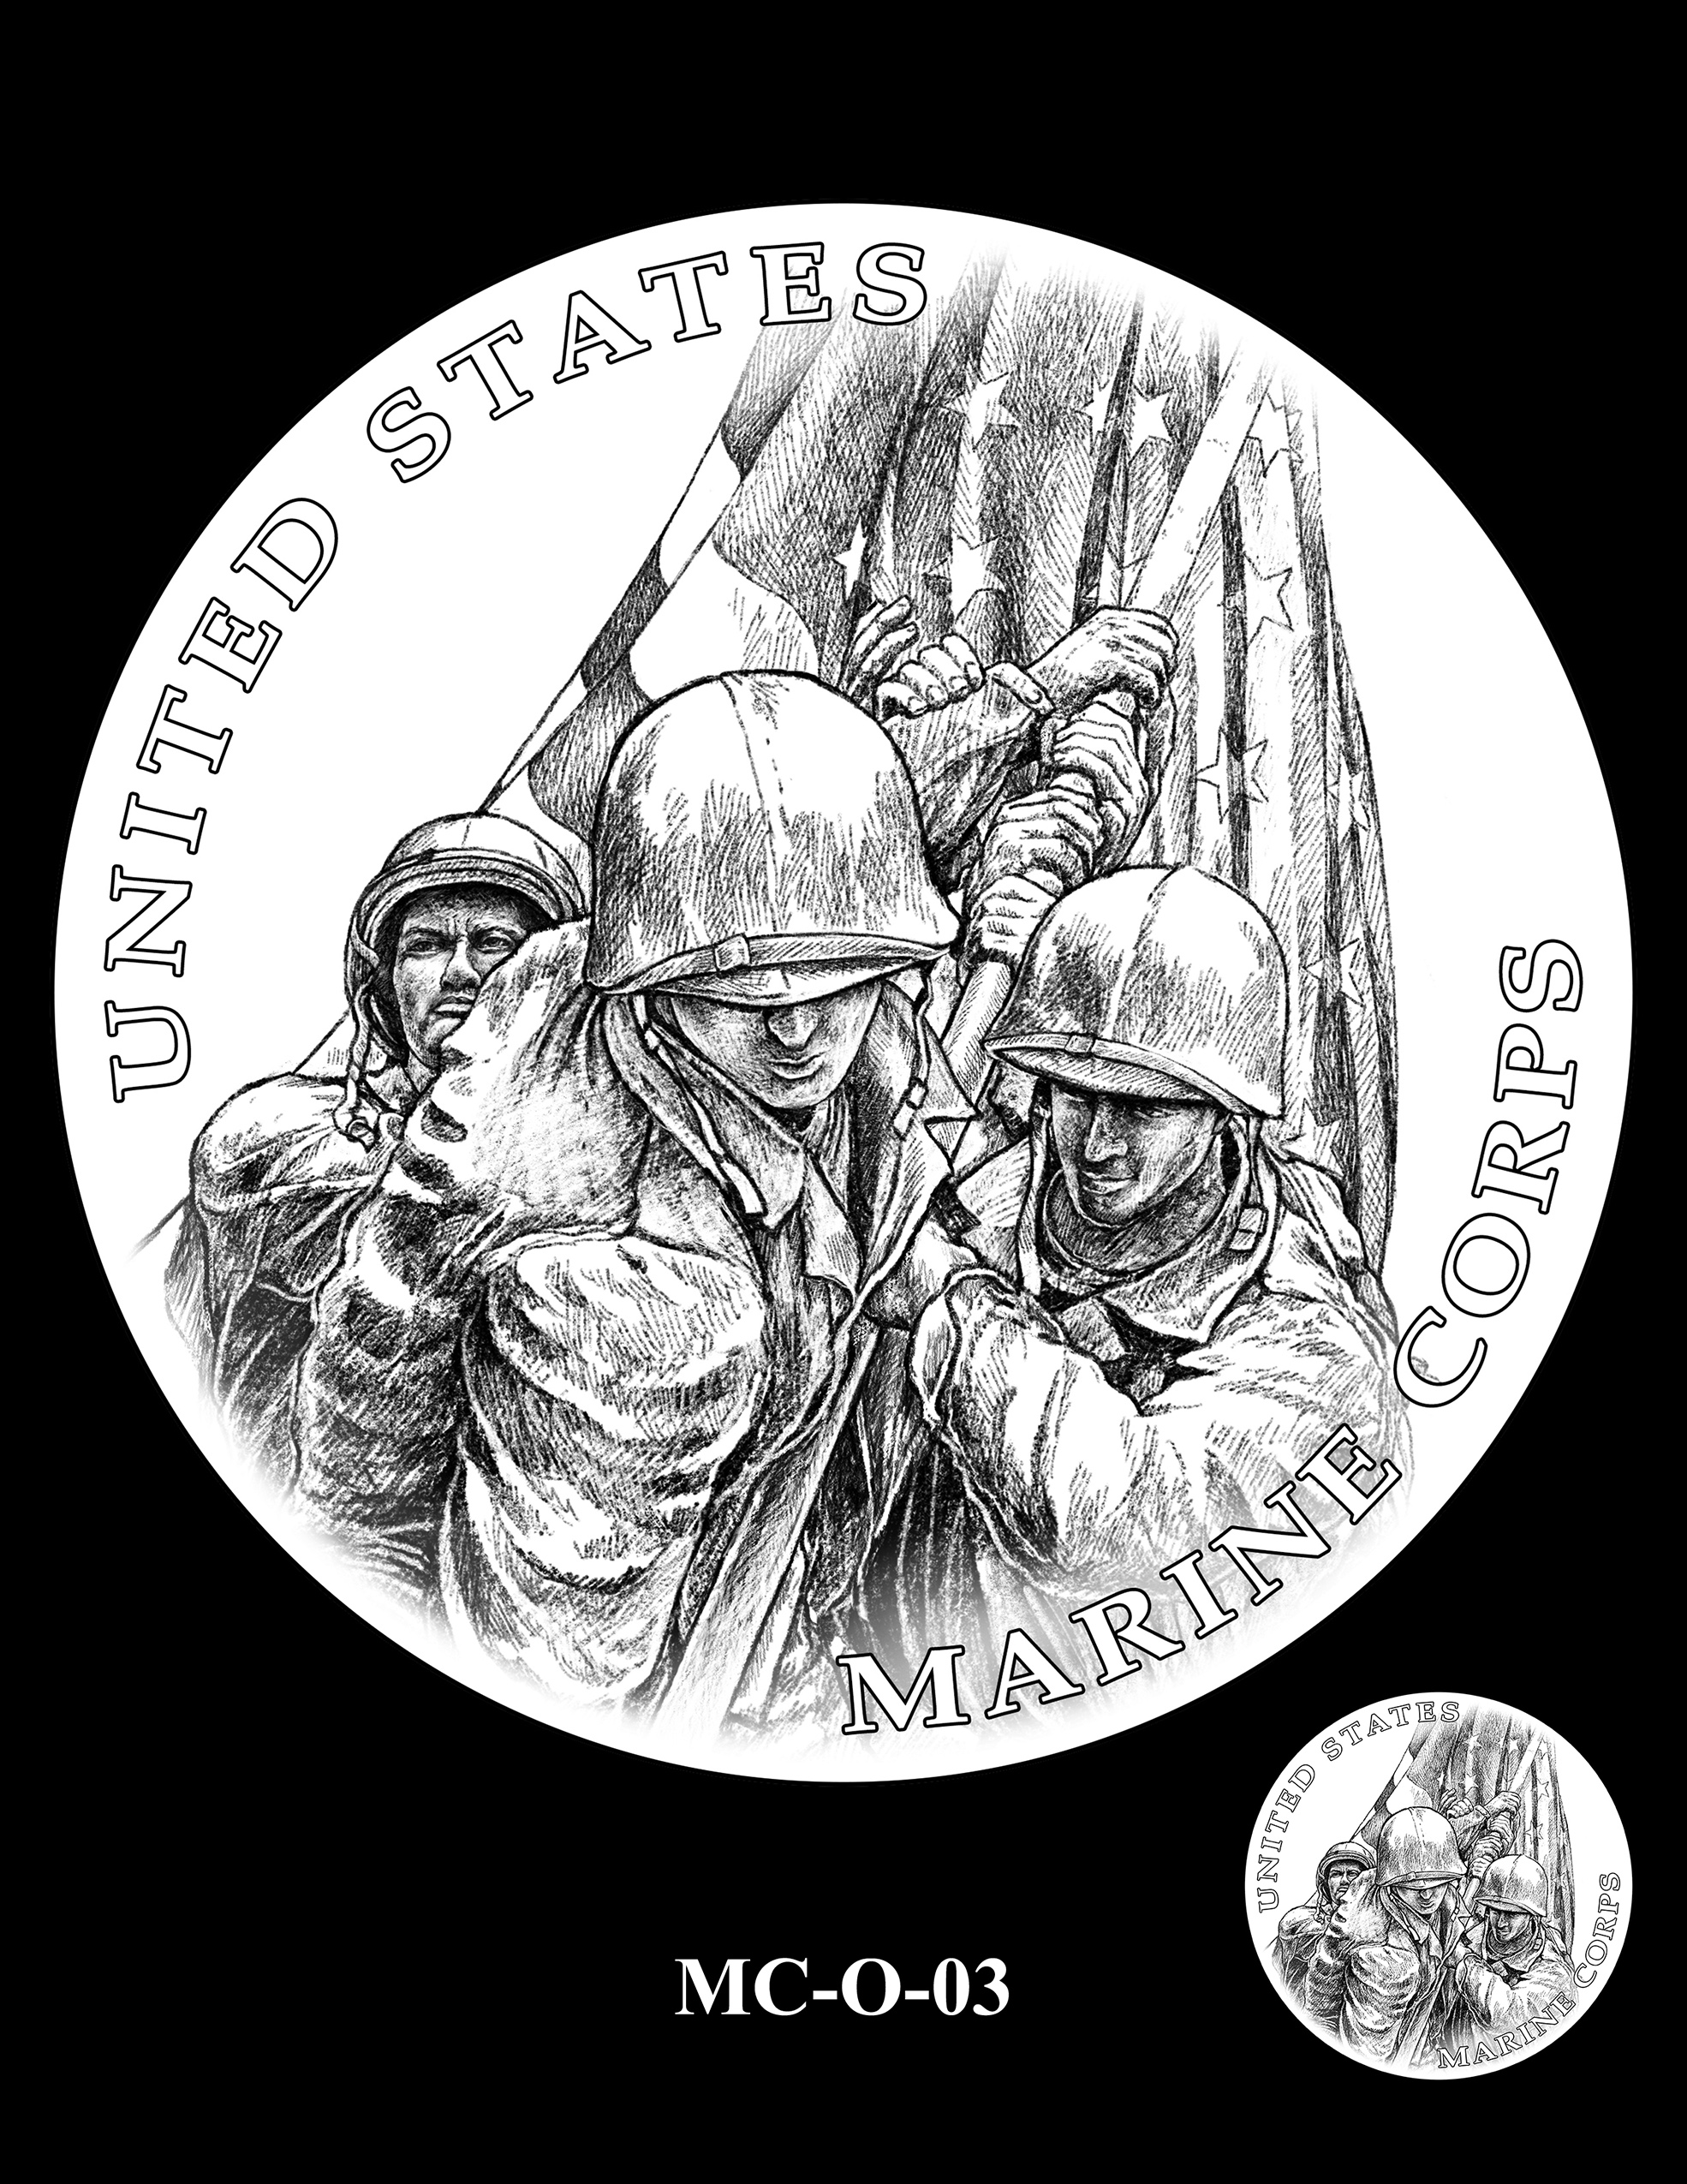 MC-O-03 -- United States Marine Corps Silver Medal